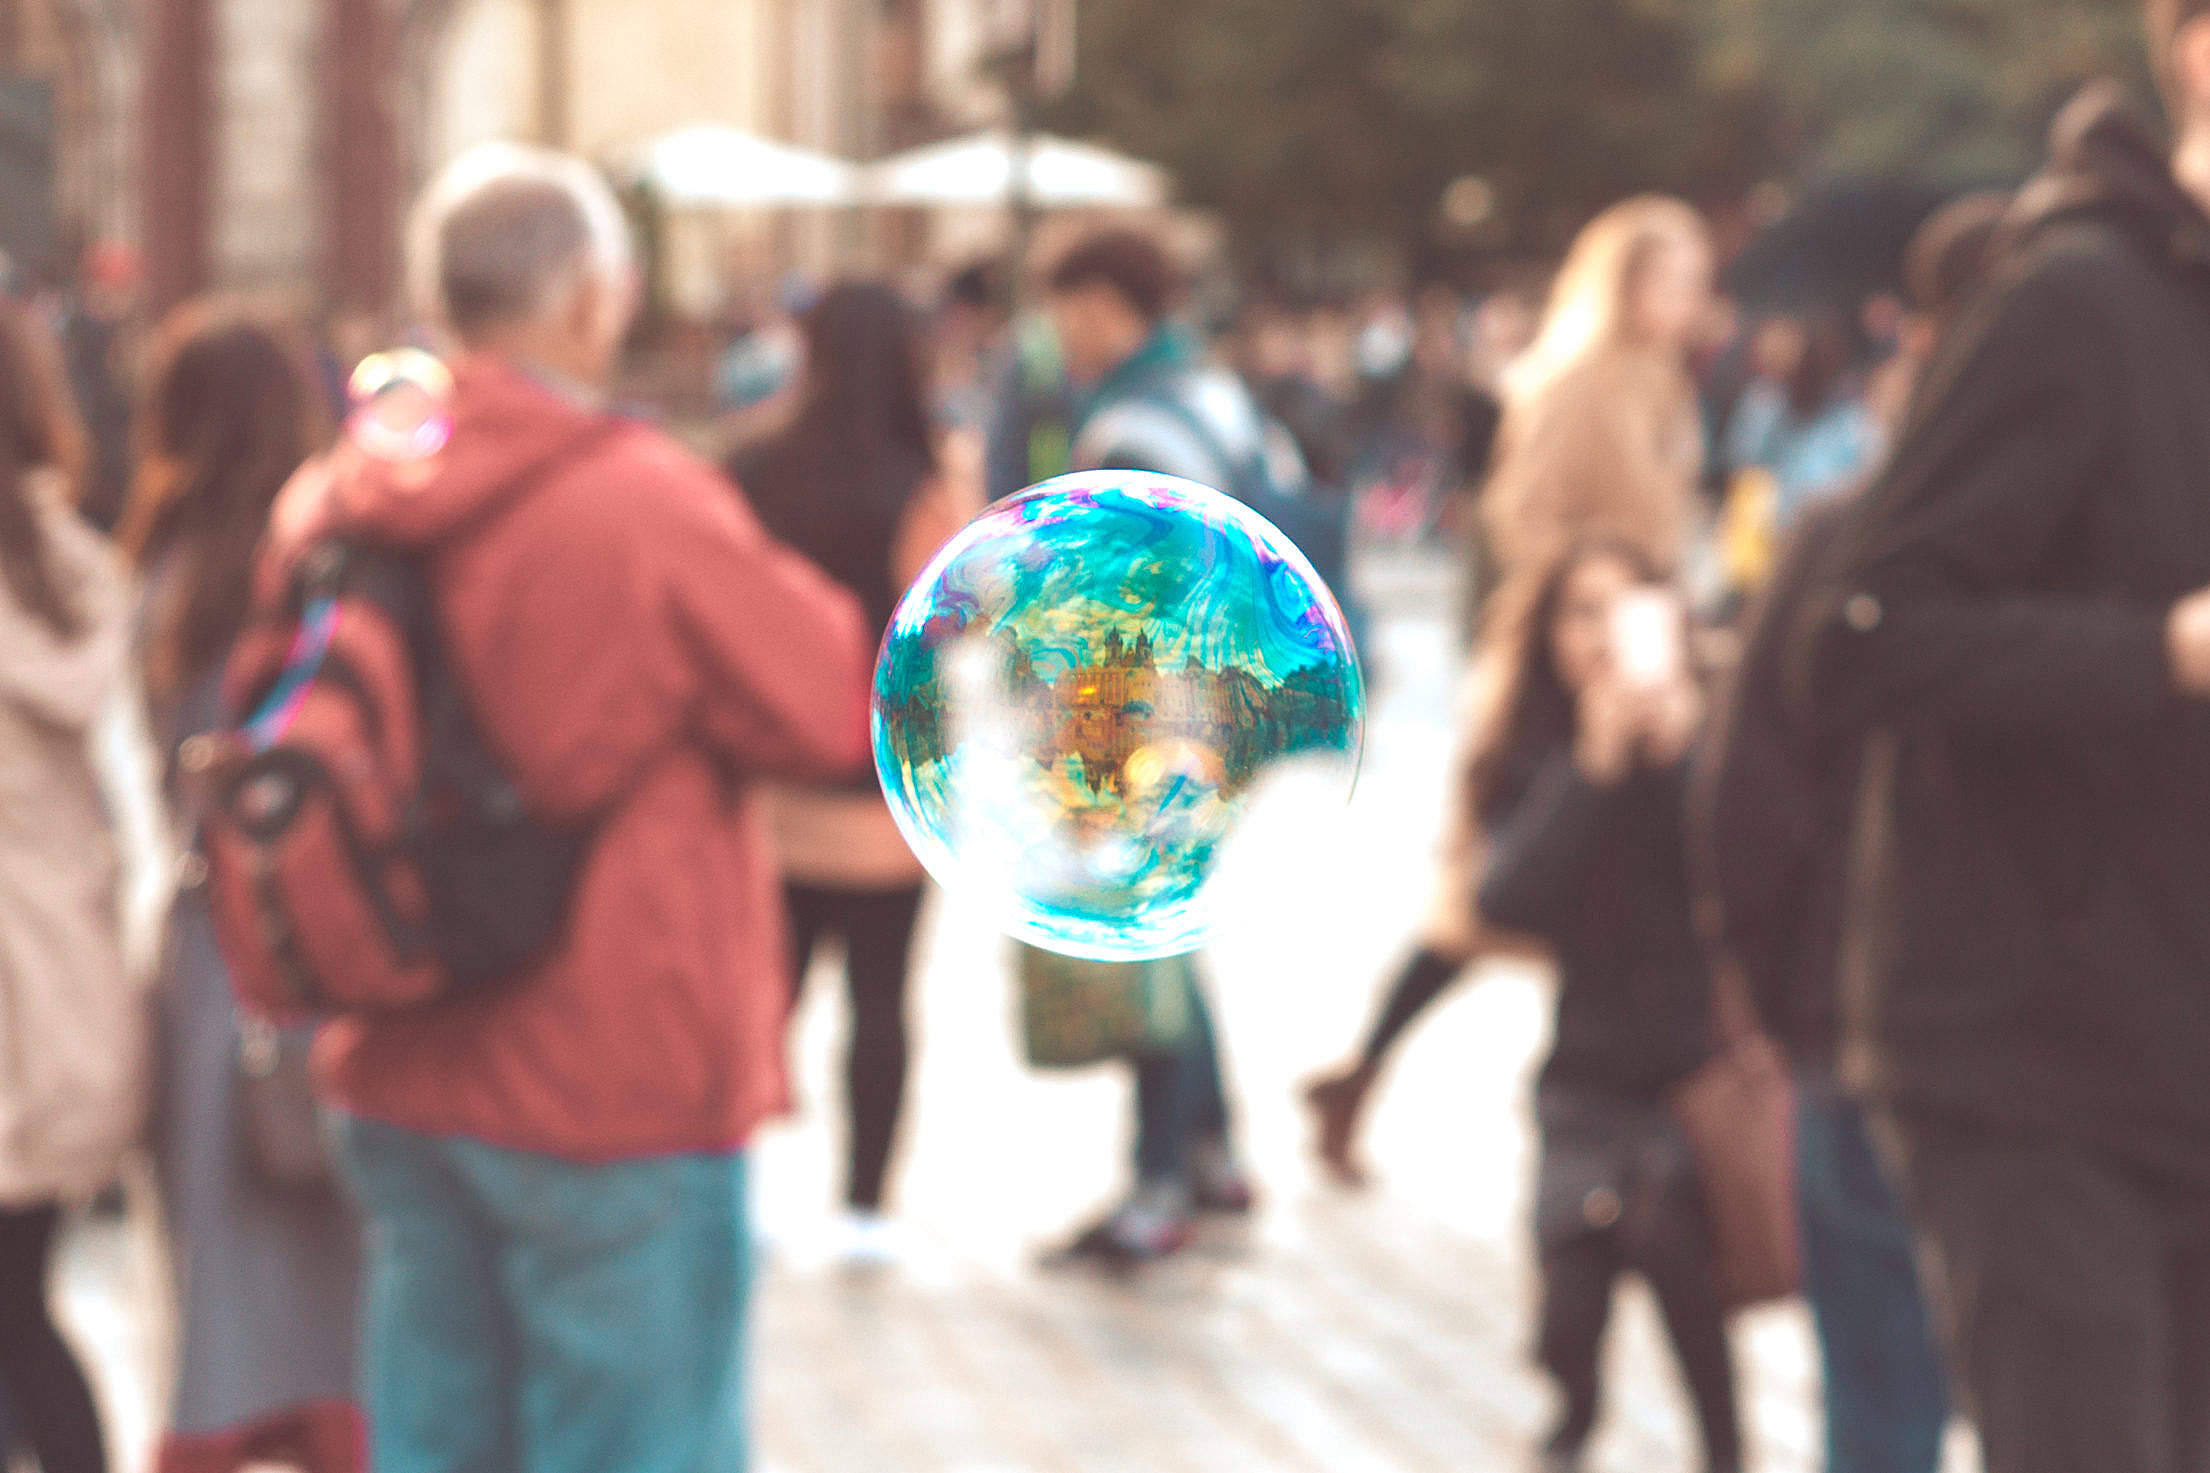 Colorful Bubble With Reflection of Prague Buildings Free Stock Photo